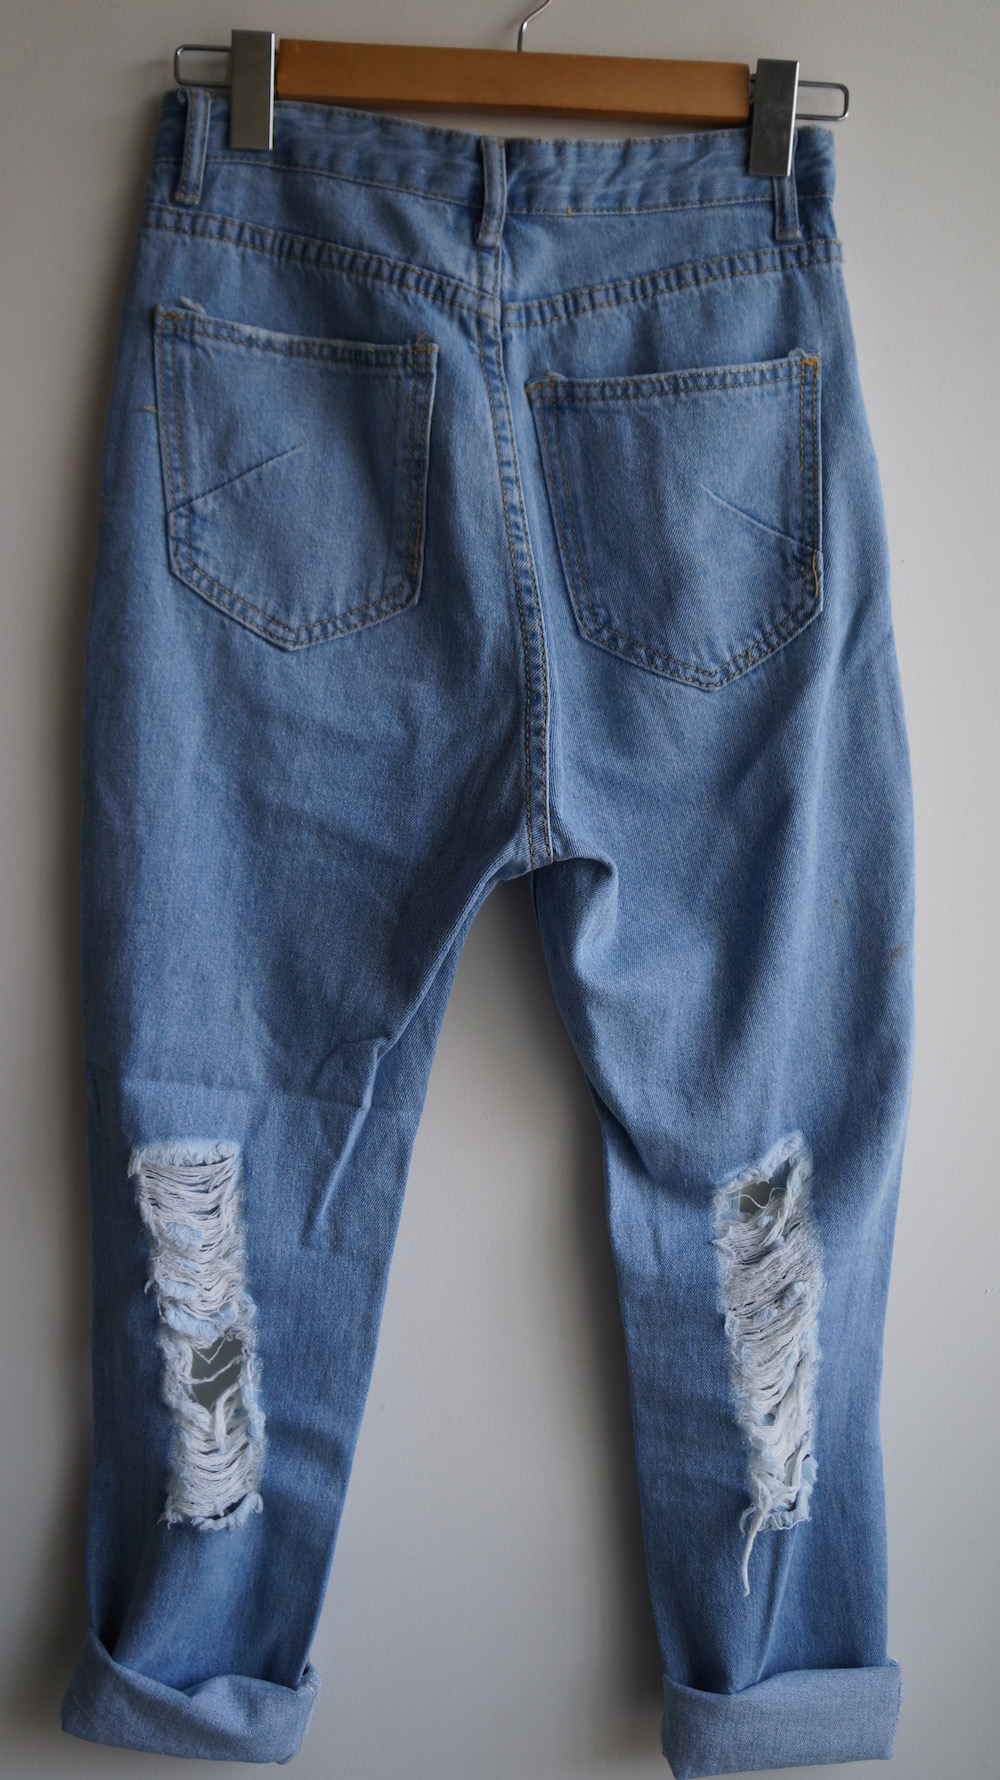 4a088f5d117 Vintage 90s High Waisted Ripped Distressed Frayed Mom Light Denim Jeans S-M  (AU6-8 ...